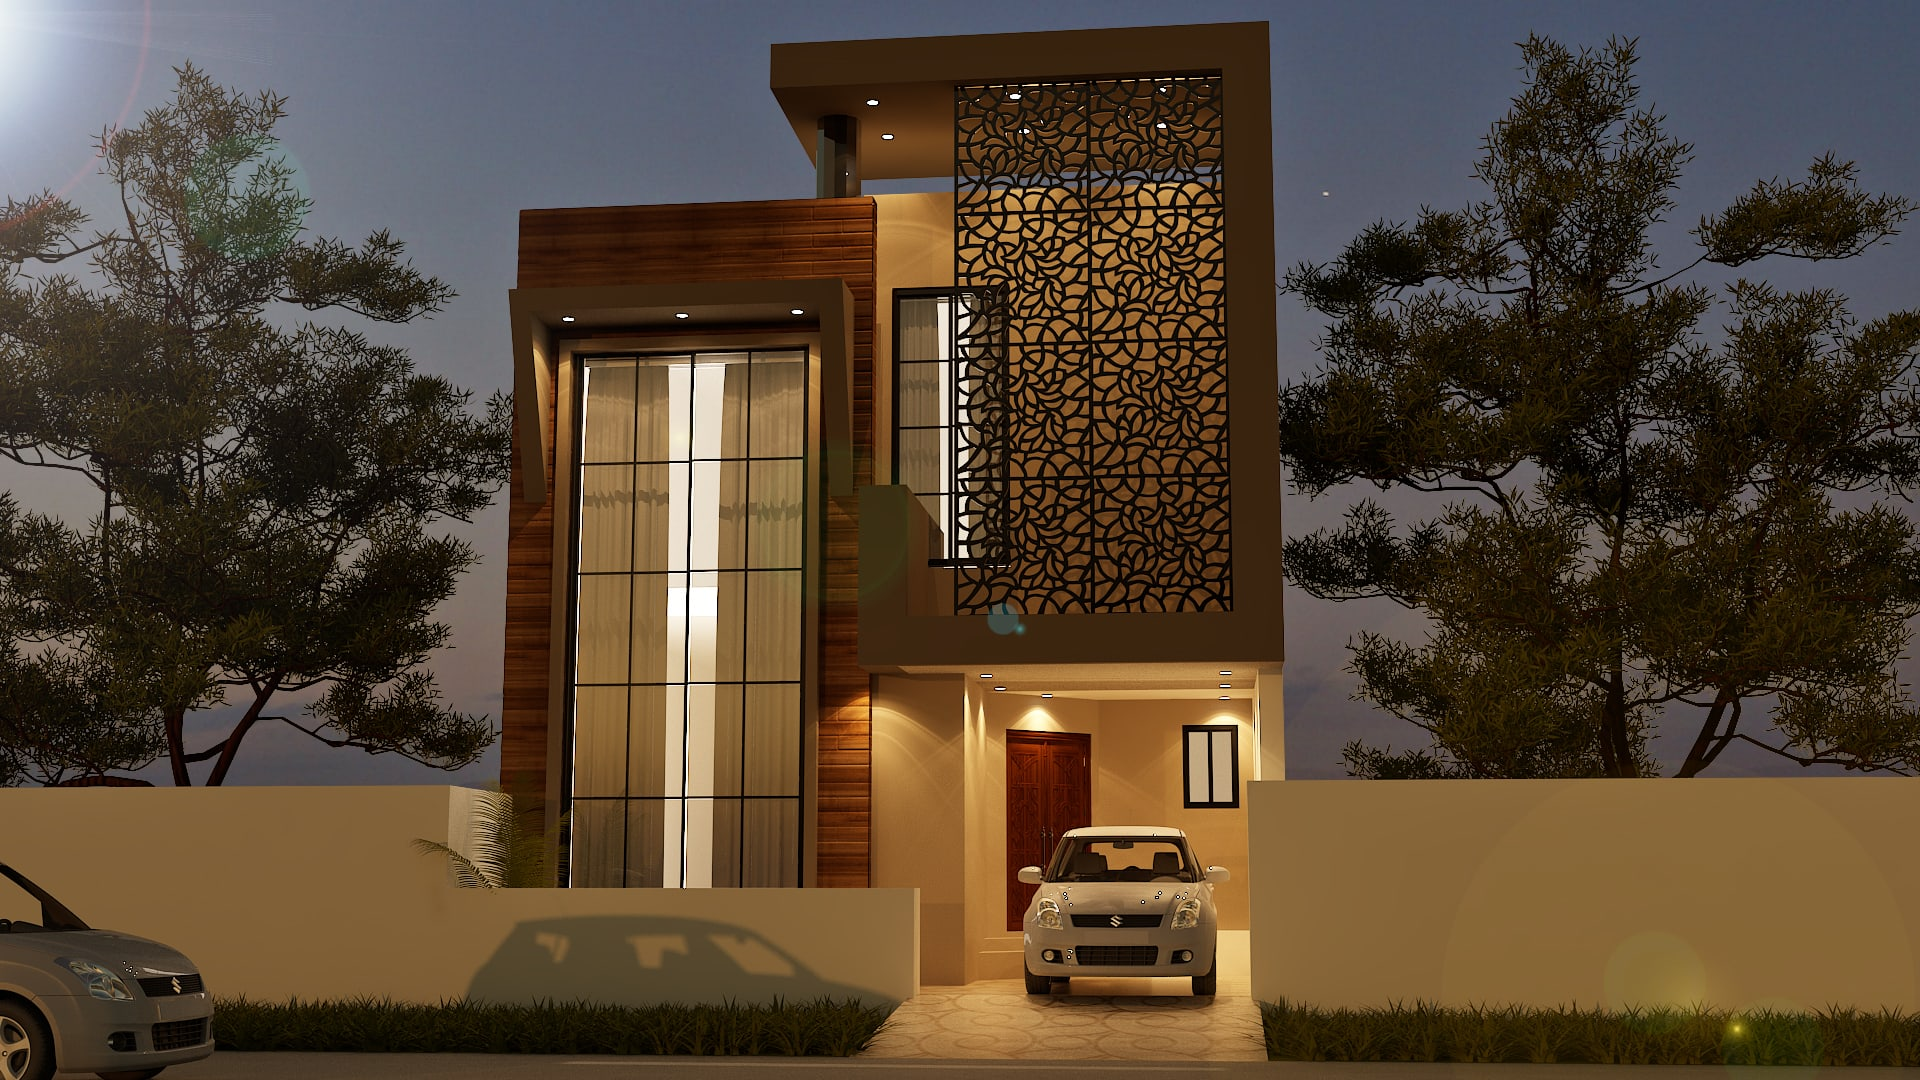 Commercial and residential building designs by Awais_1995